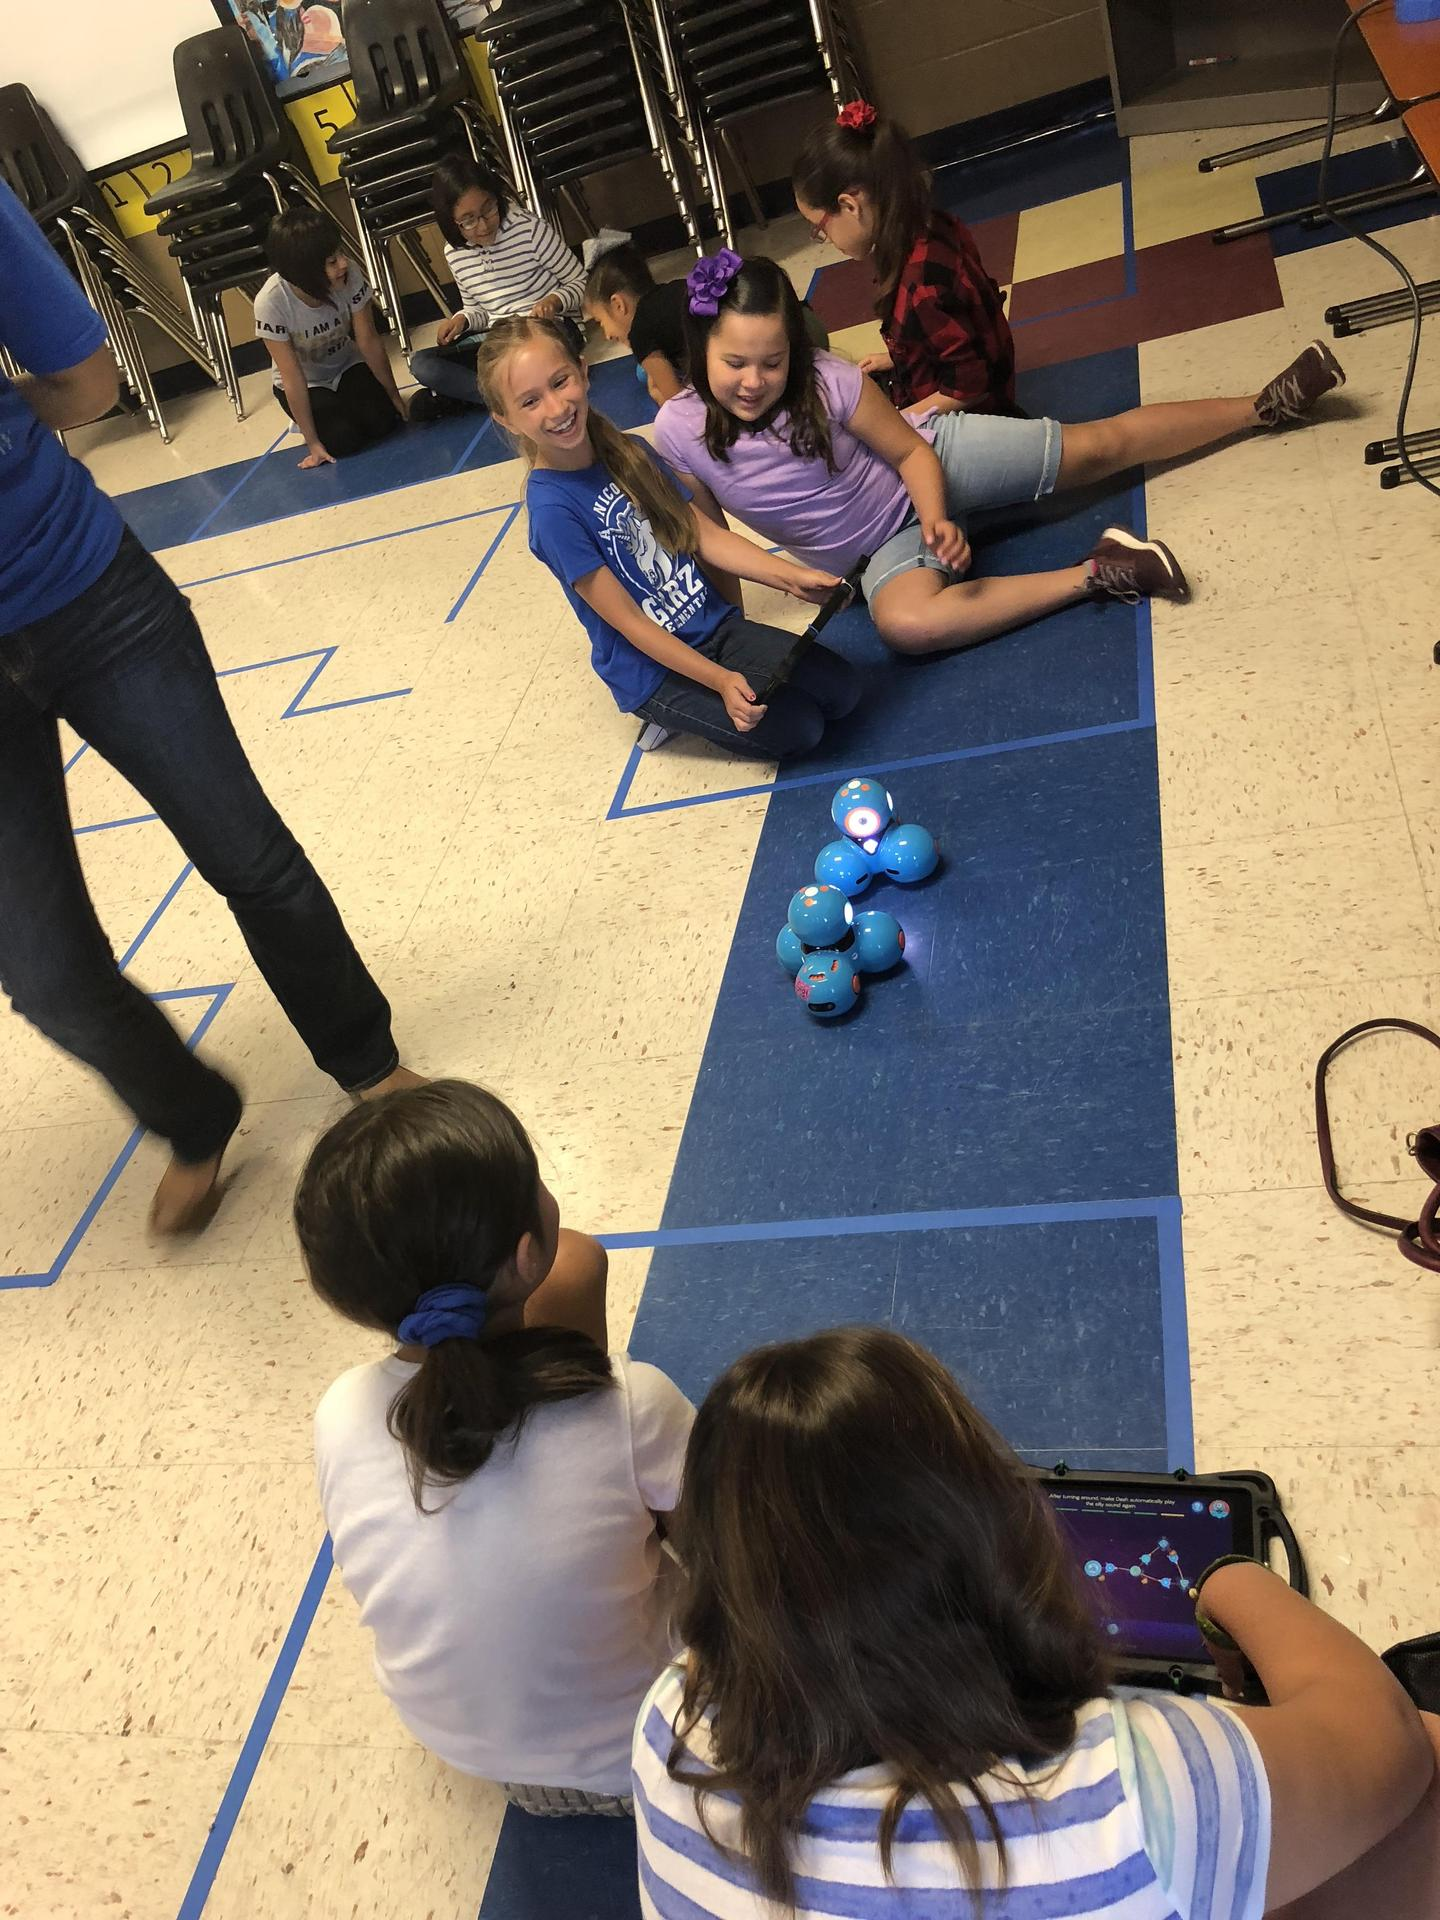 Students working with small robots on the floor